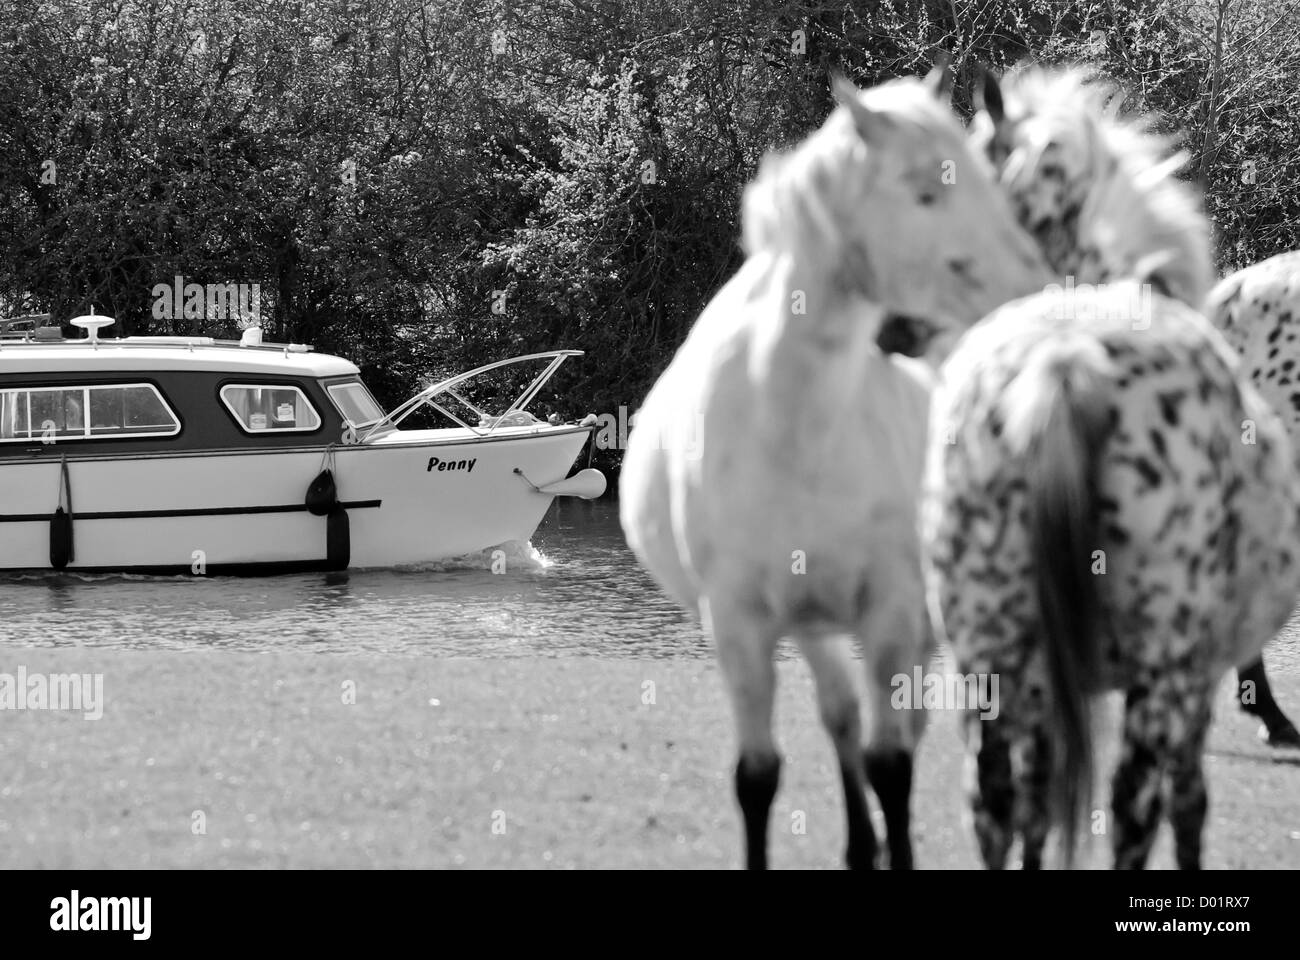 Black and white image of boat travelling up river Thames on Port Meadow, Oxford, UK with horses in foreground - Stock Image